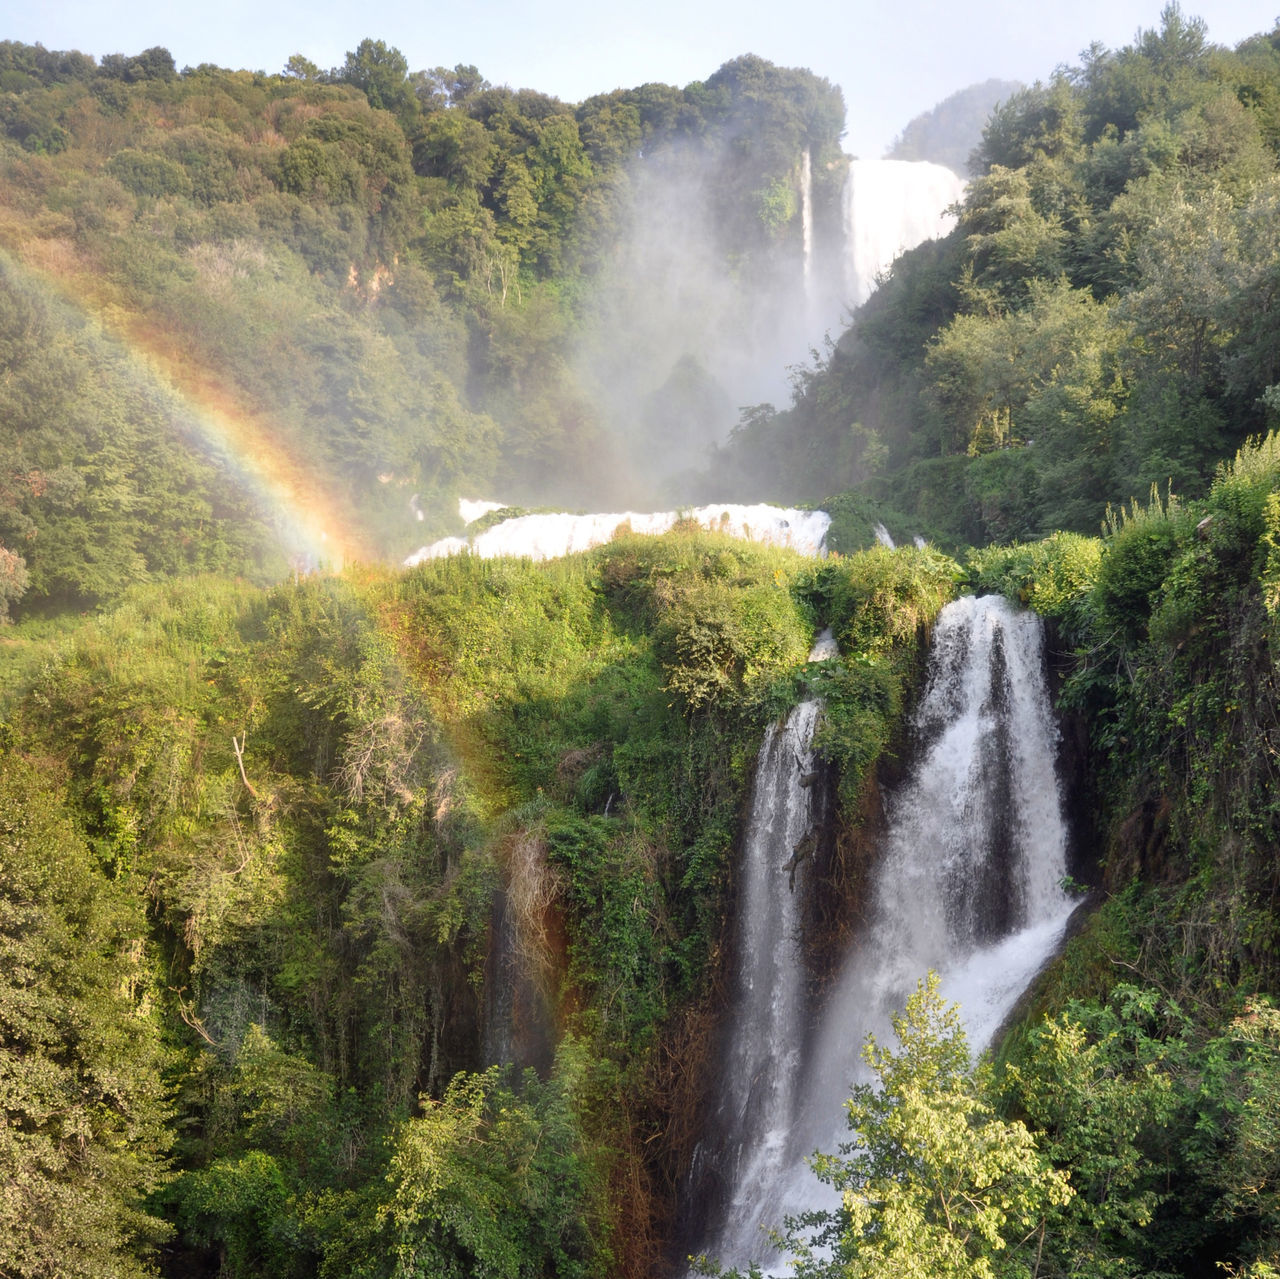 Waterfall with rainbow Beauty In Nature Beauty In Nature Cascate Delle Marmore Day Freshness Green Green Color Growth Italy Landscape Motion Mountain Nature No People Outdoors Rainbow Scenics Stream - Flowing Water Tree Umbria Water Waterfall